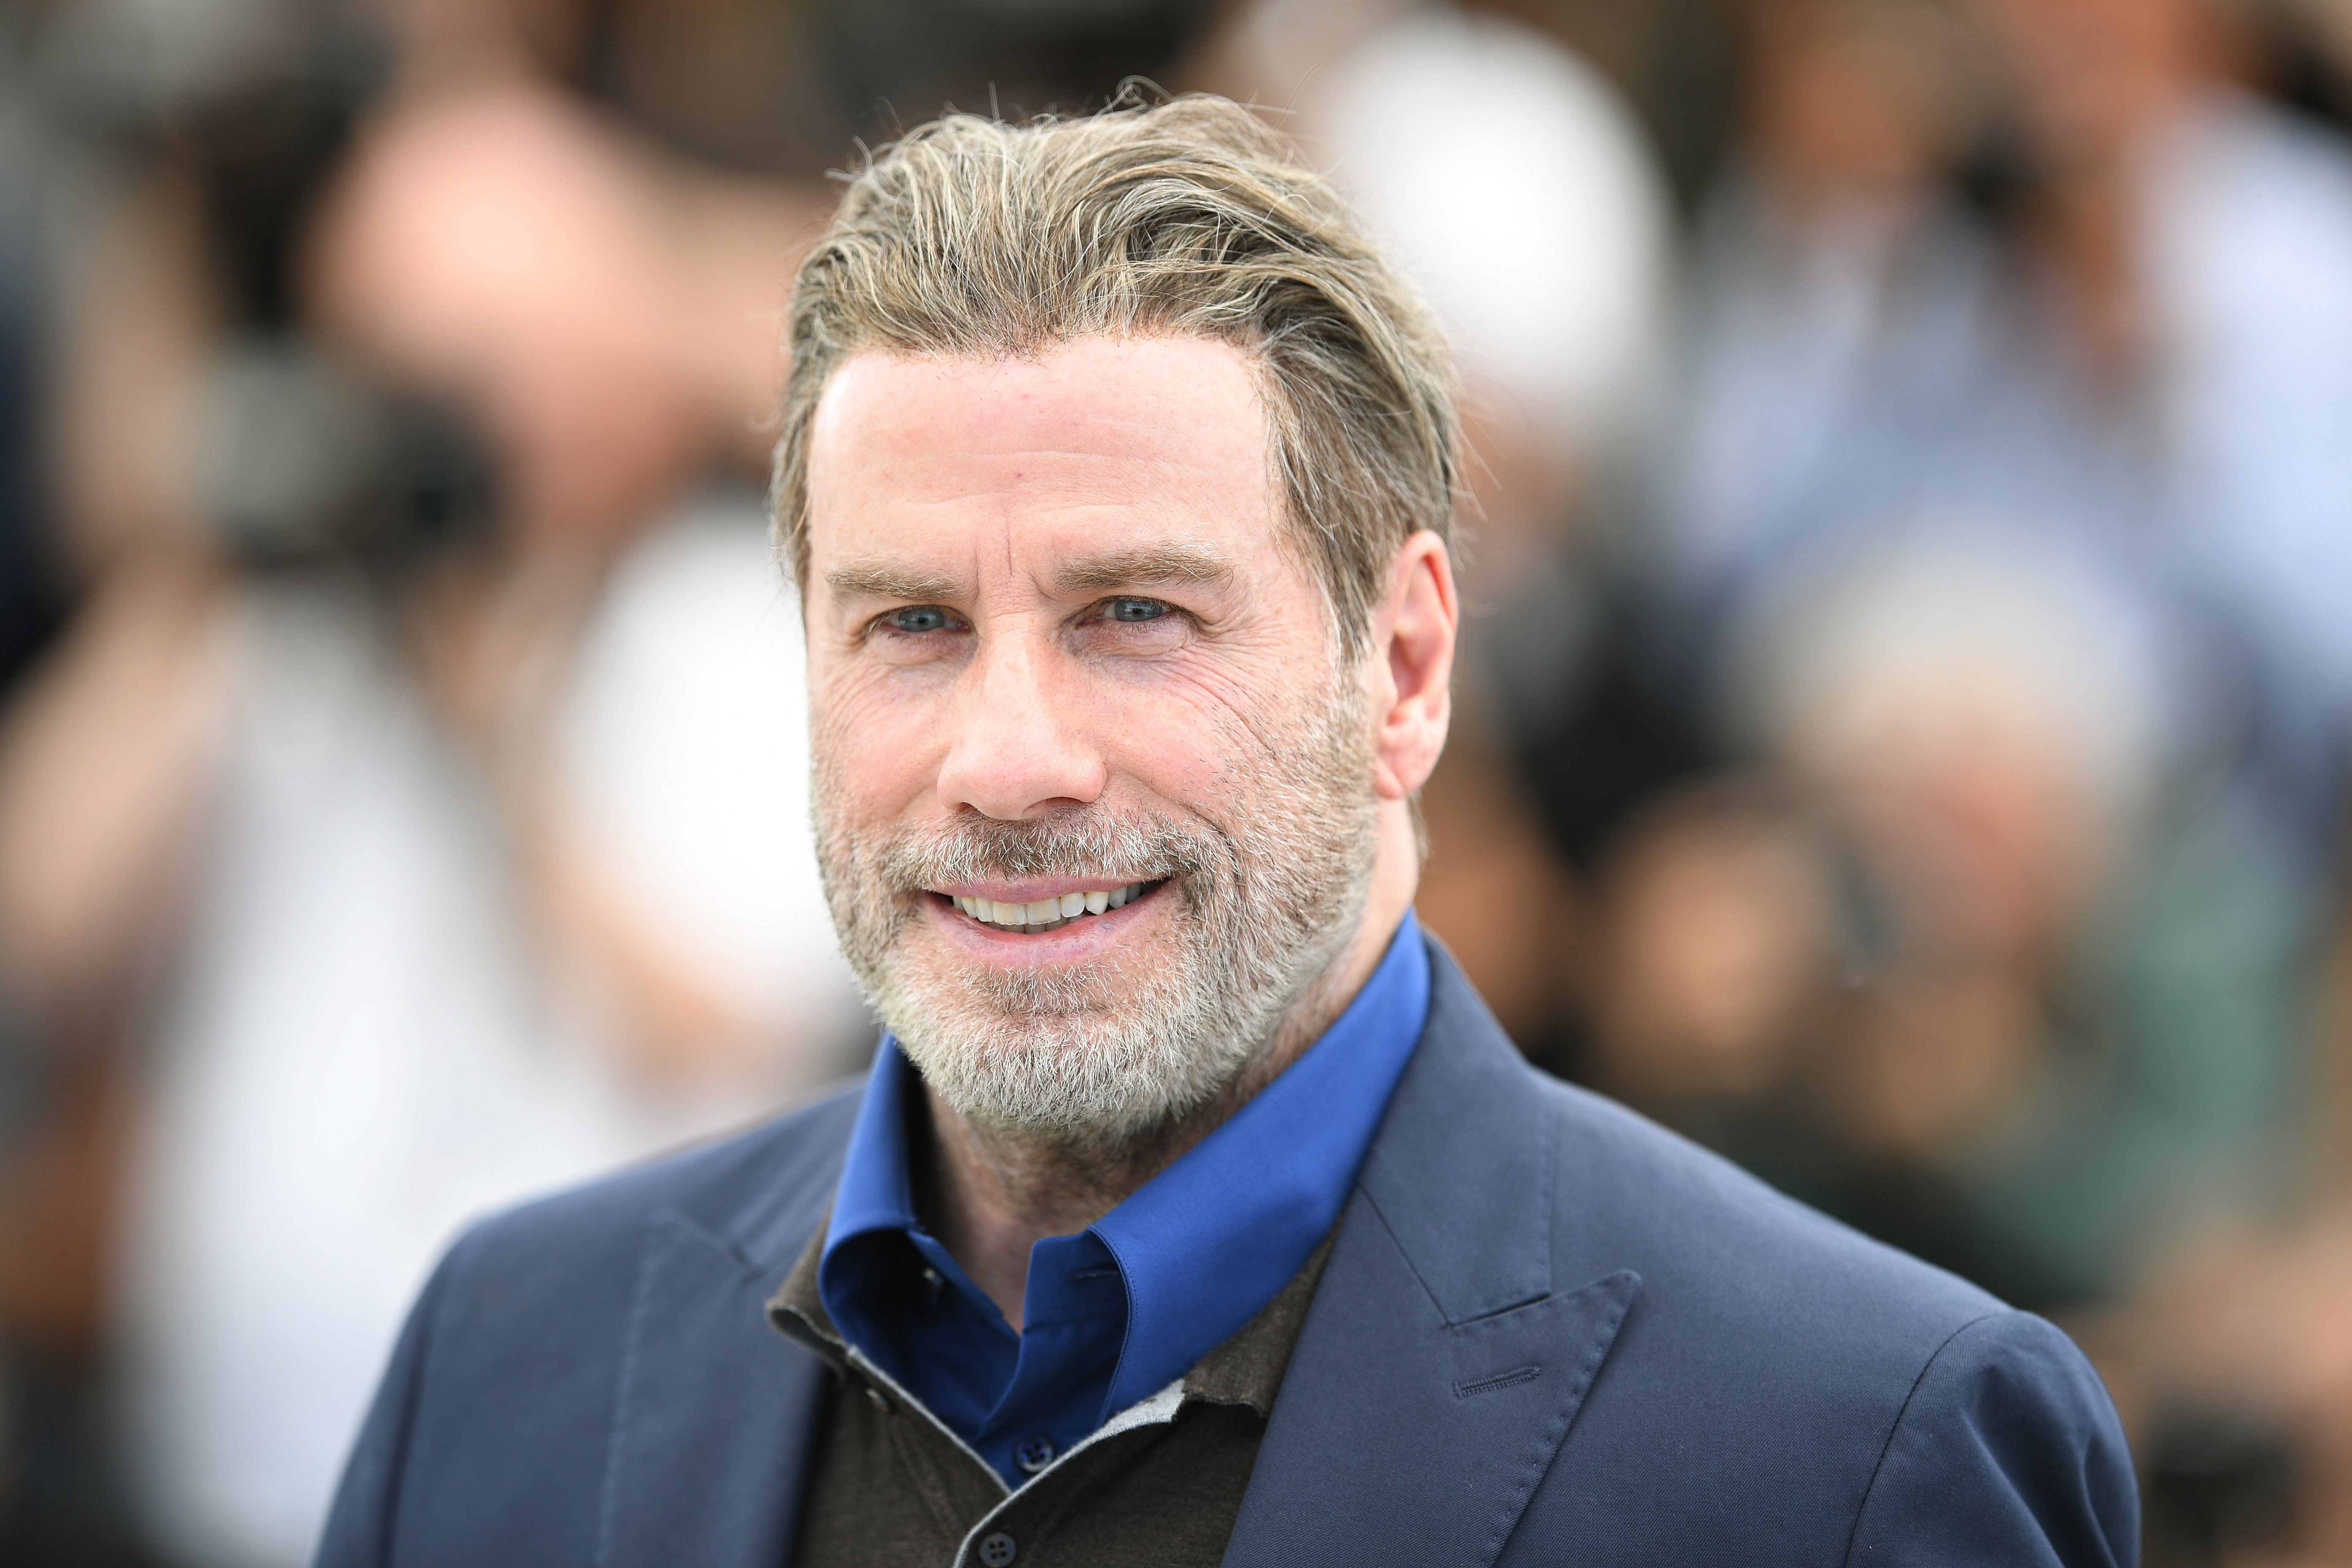 """John Travolta attends the photocall for """"Rendezvous with John Travolta - Gotti"""" at Cannes Film Festival in Cannes, France on May 15, 2018 